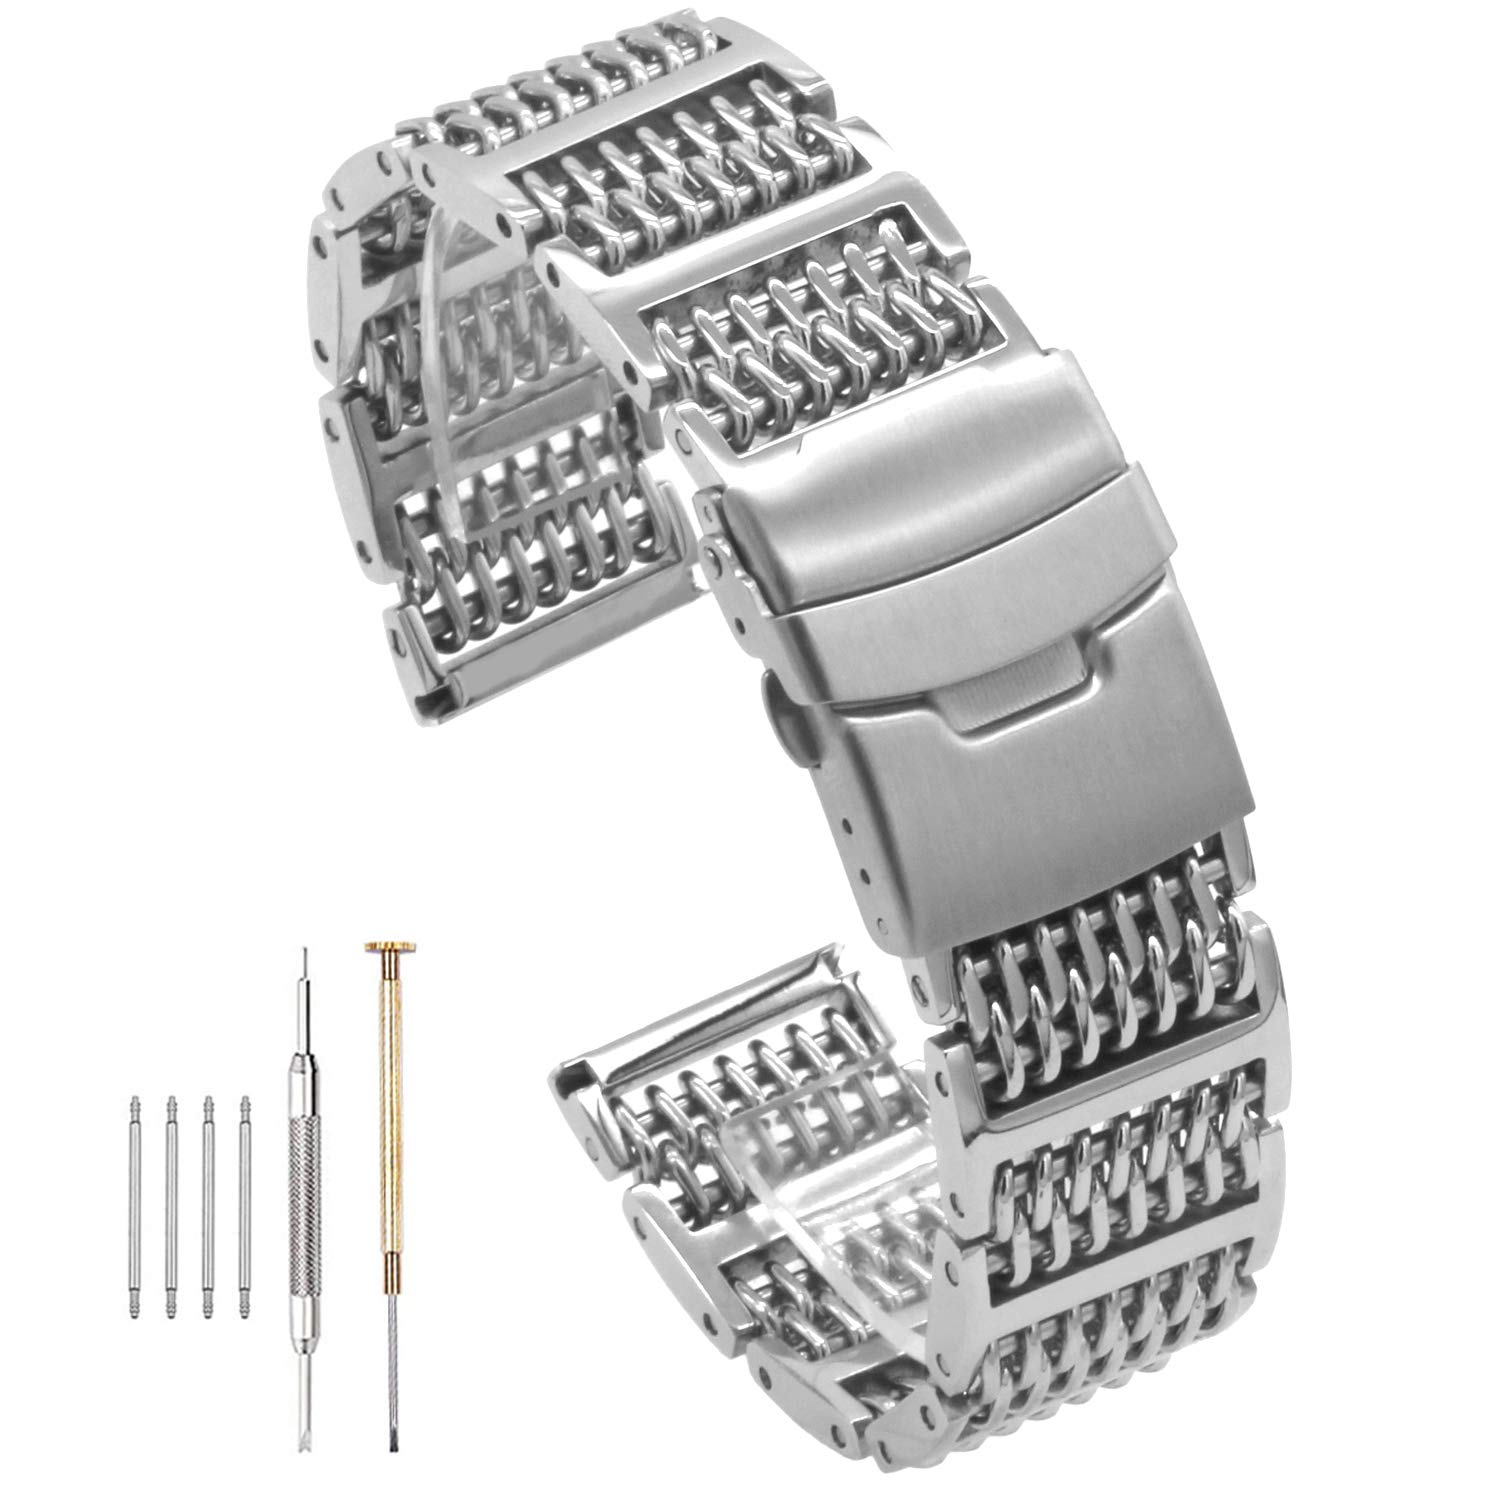 20/22/24mm 6H-Link Shark Stainless Steel Mesh Strap Wrist Watch Band Heavy Duty Diving Watch Strap Mens (22mm, Silver) by Hstrap